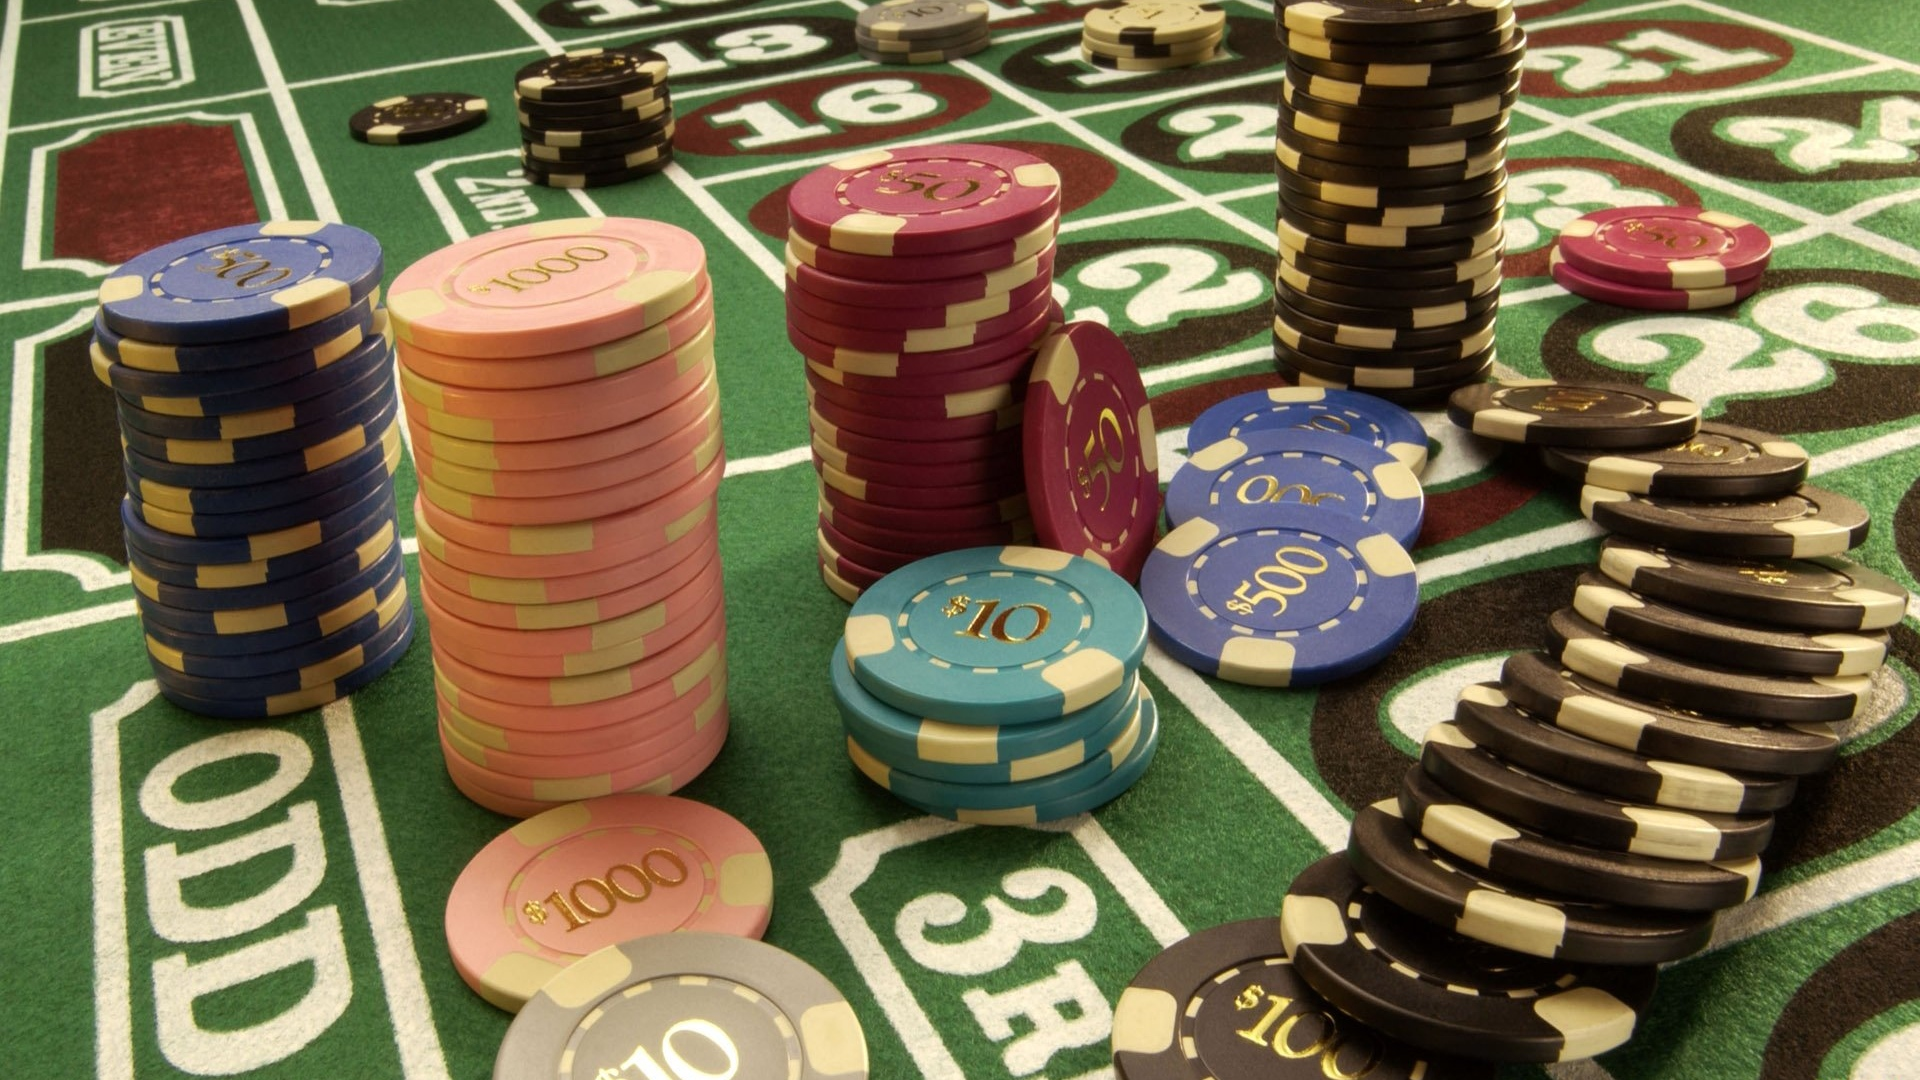 What are the effective reasons for you to choose online casinos?